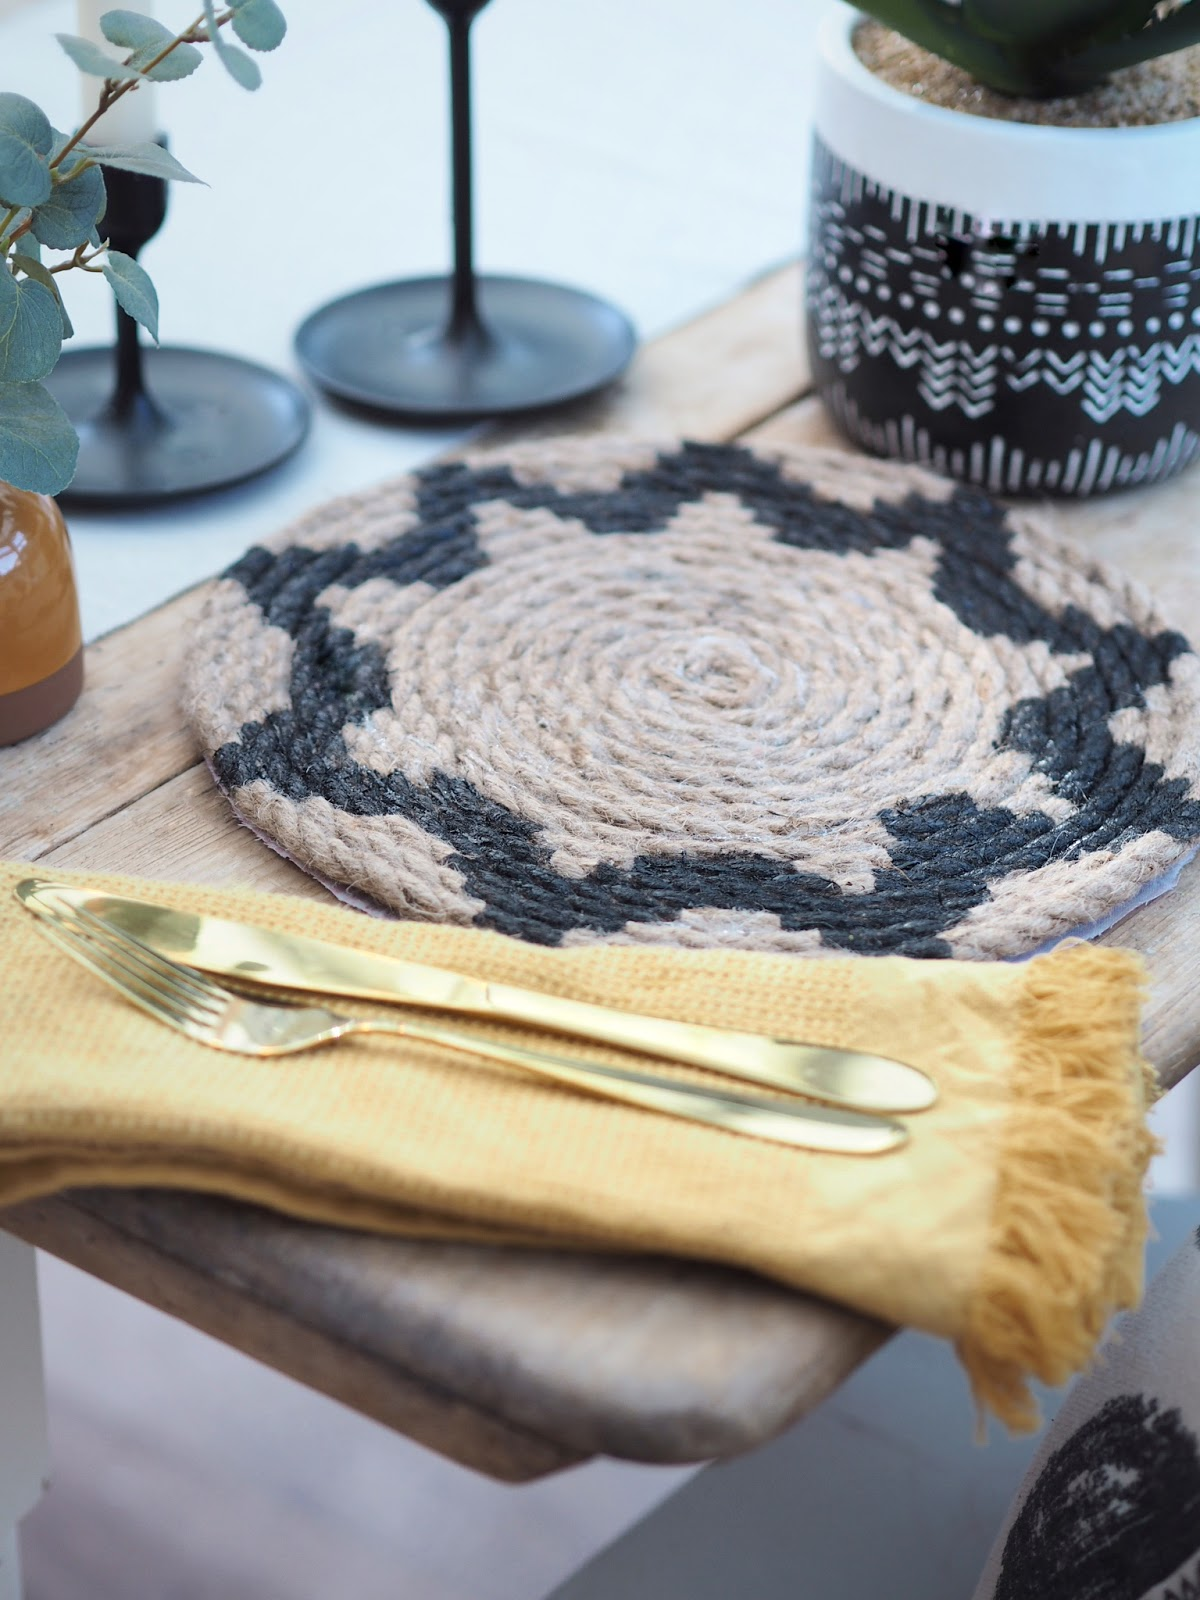 DIY rope placemat made from a ball of rope and painted with a boho-style pattern. Make your own Pier One, Pottery Barn and Macys style placemat on a tight budget for just a few pounds or dollars. Crafting ideas for DIY home decor.